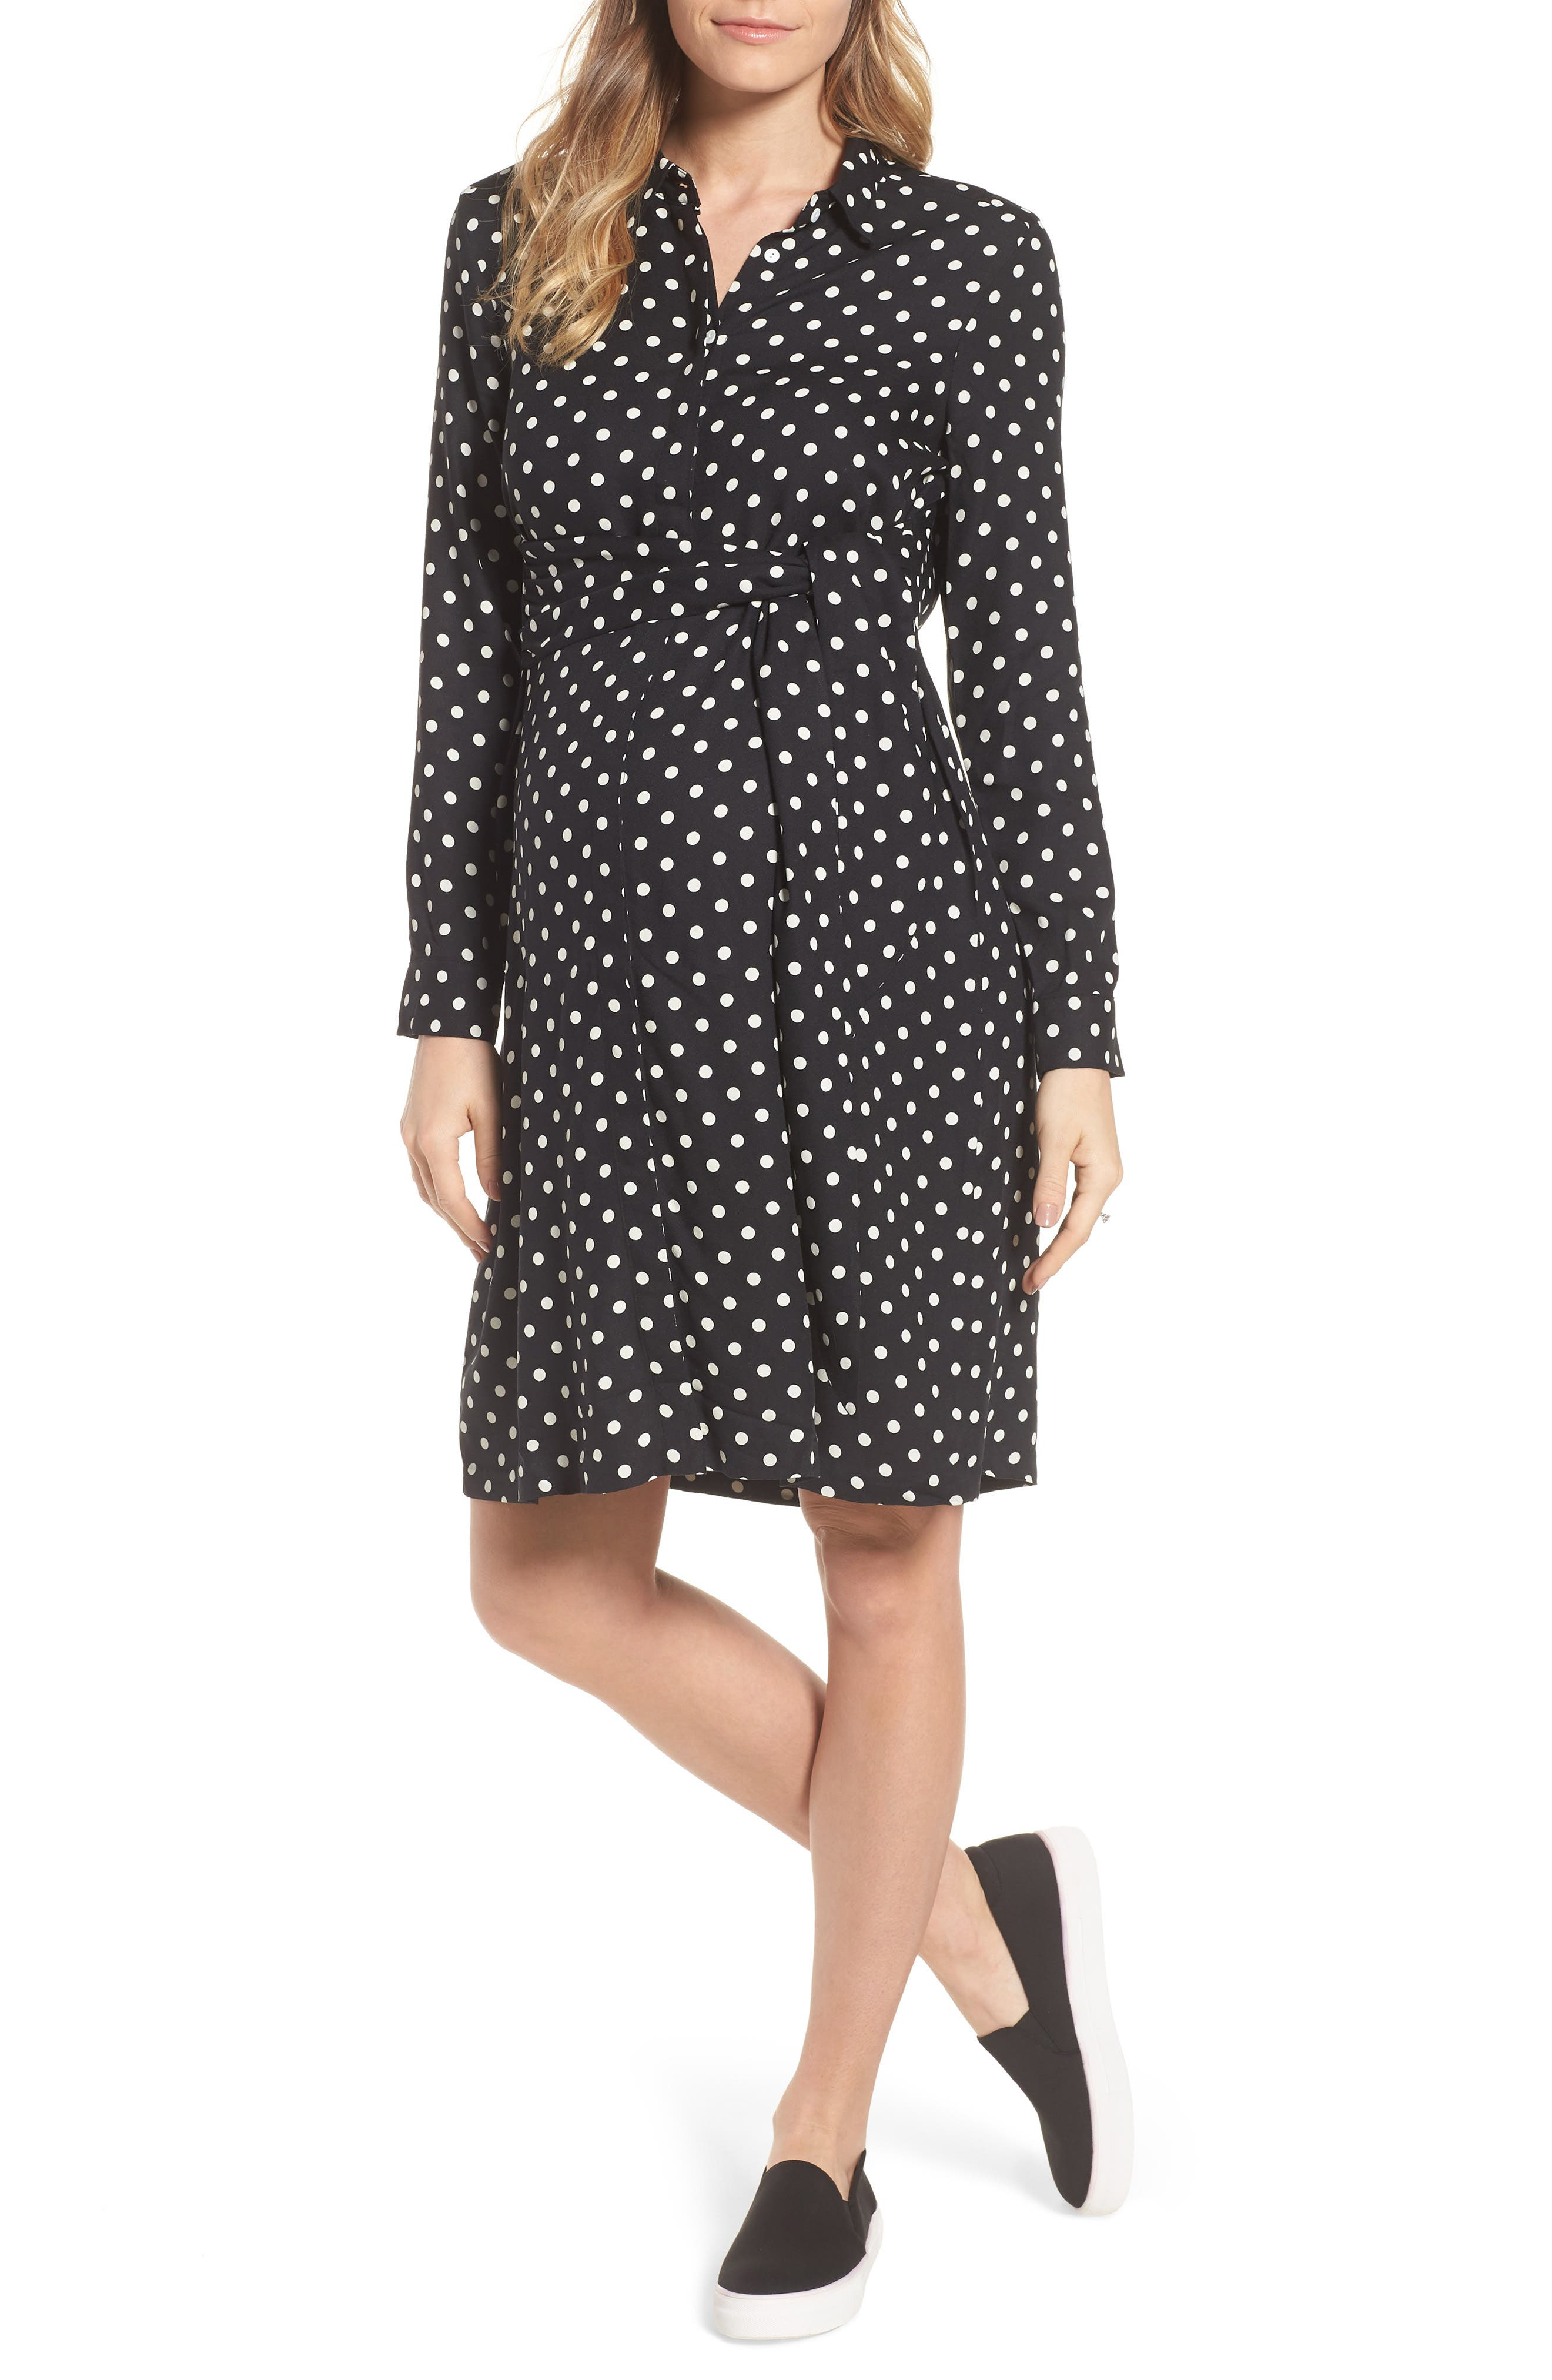 ISABELLA OLIVER,                             Elisha Maternity Shirtdress,                             Main thumbnail 1, color,                             BLACK/WHITE POLKA CREPE